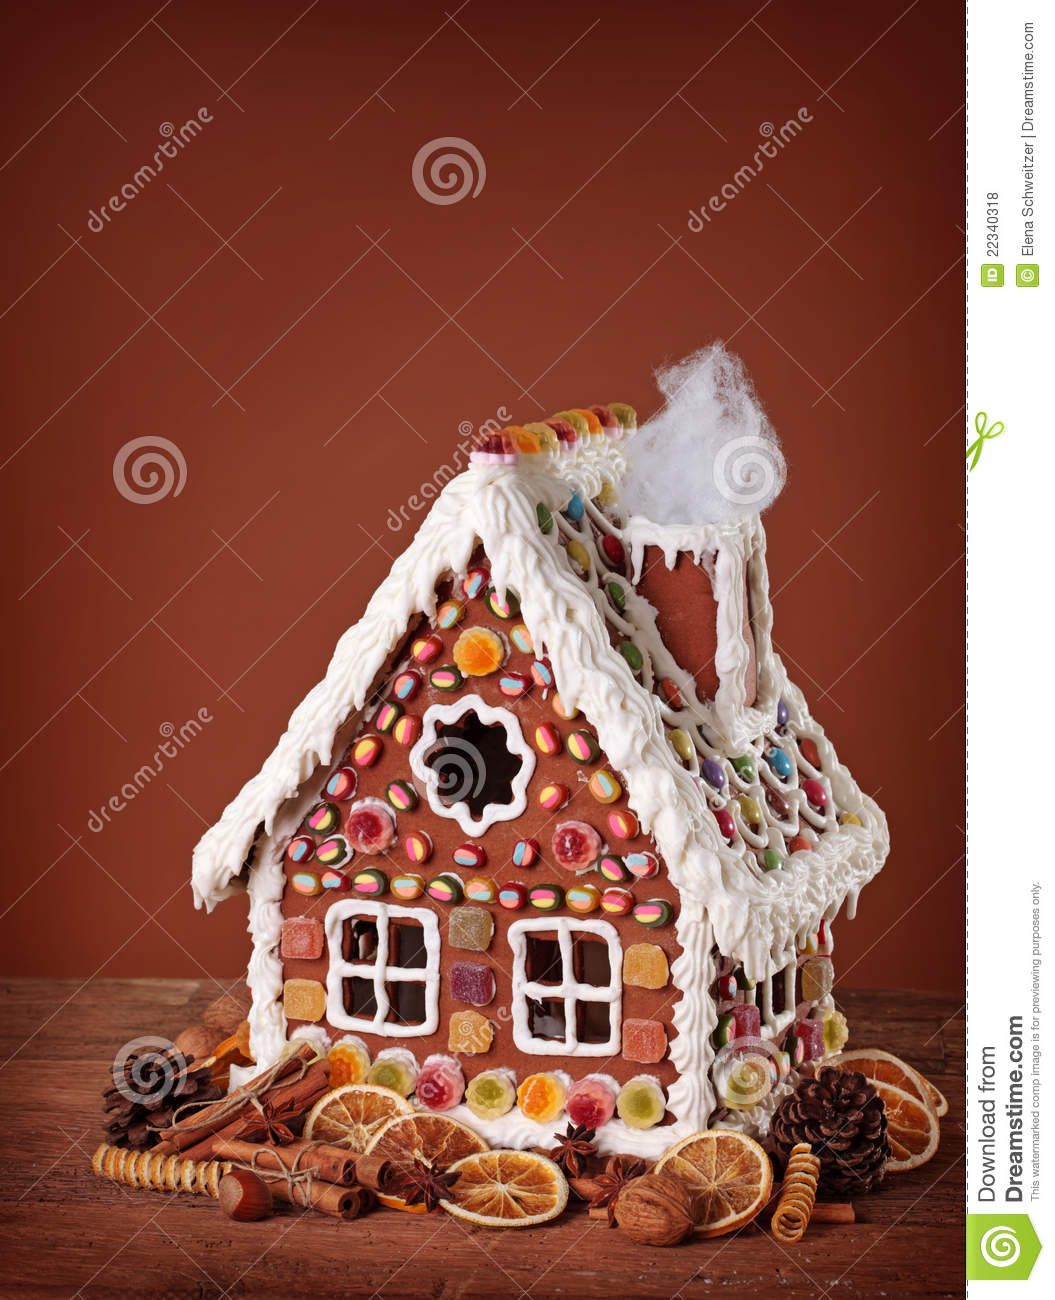 The Gingerbread White House >> Homemade Gingerbread House Royalty Free Stock Photos - Image: 22340318